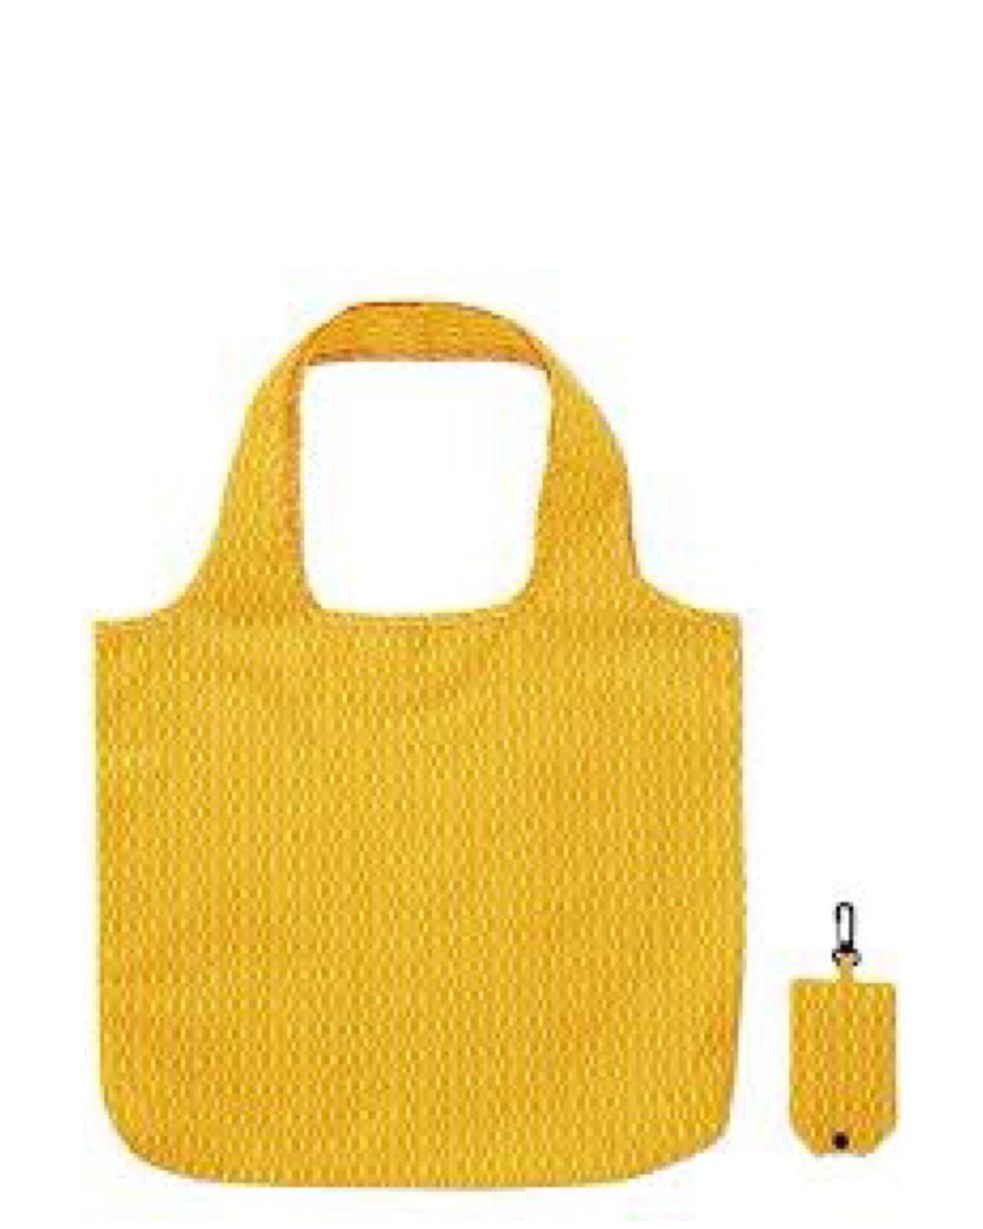 Torune - Shopping Bag 'Gold Square' (M)